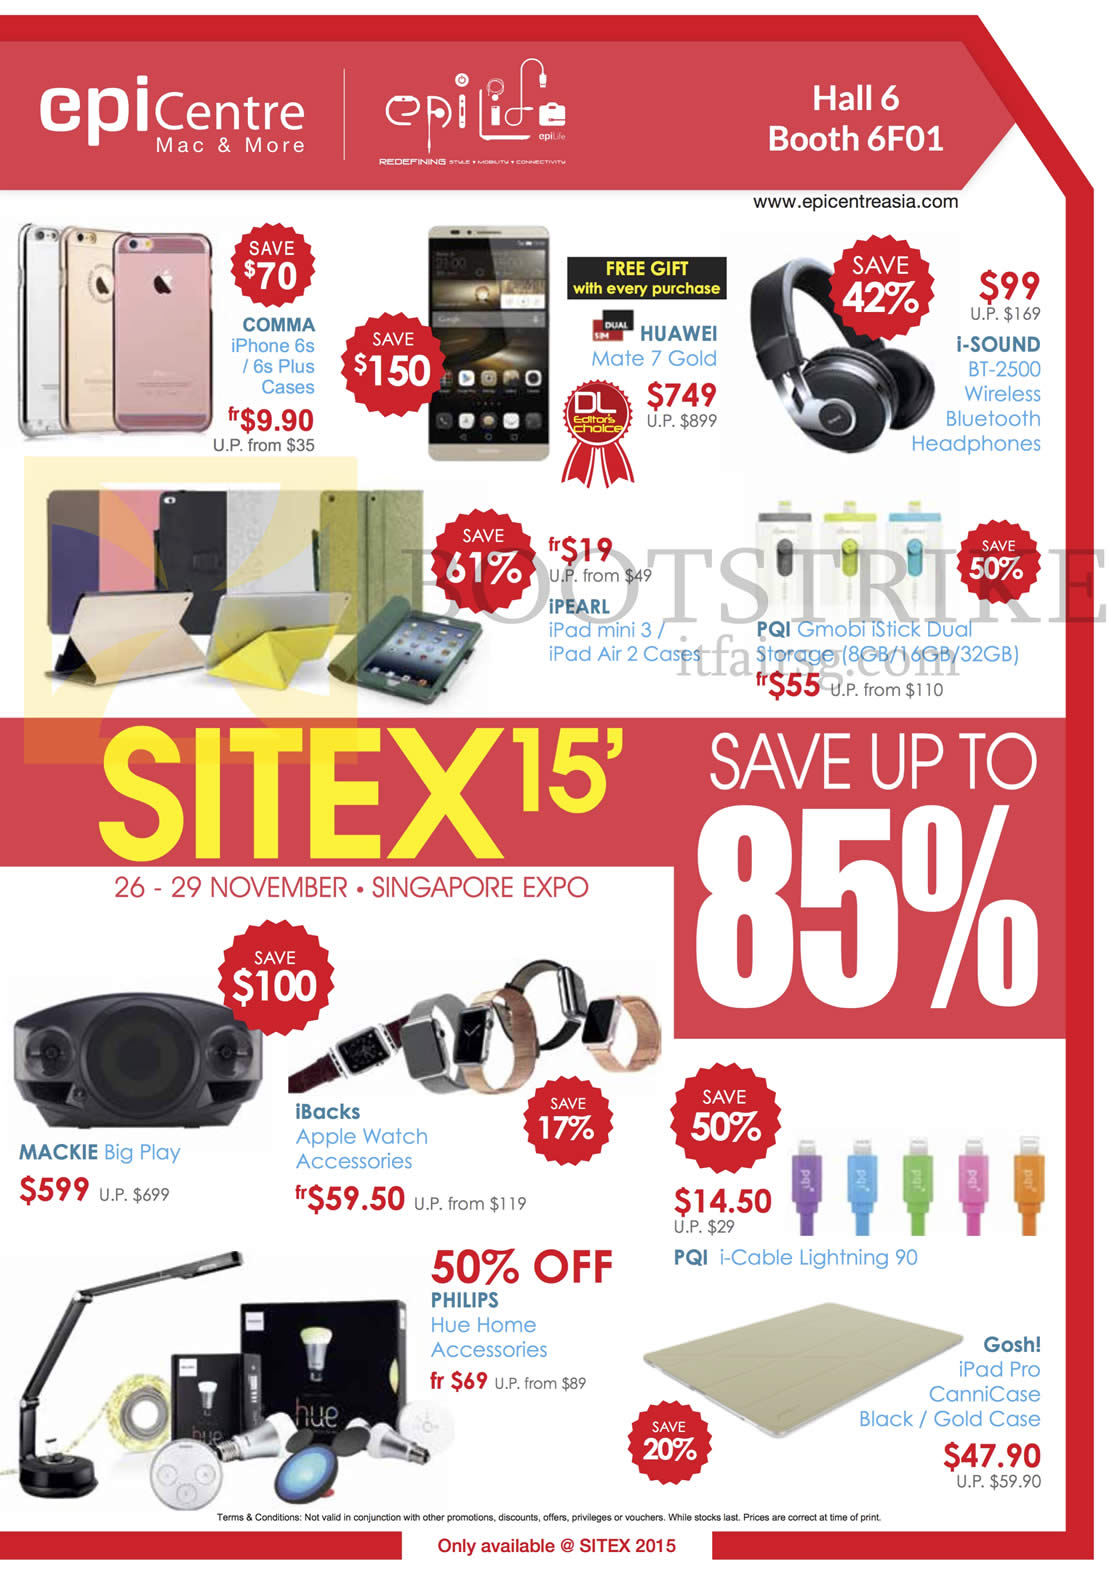 SITEX 2015 price list image brochure of EpiCentre, EpiLife Cases, Bluetooth Headphones, Apple Watch Accessories, Lightning Cable, Home Accessories